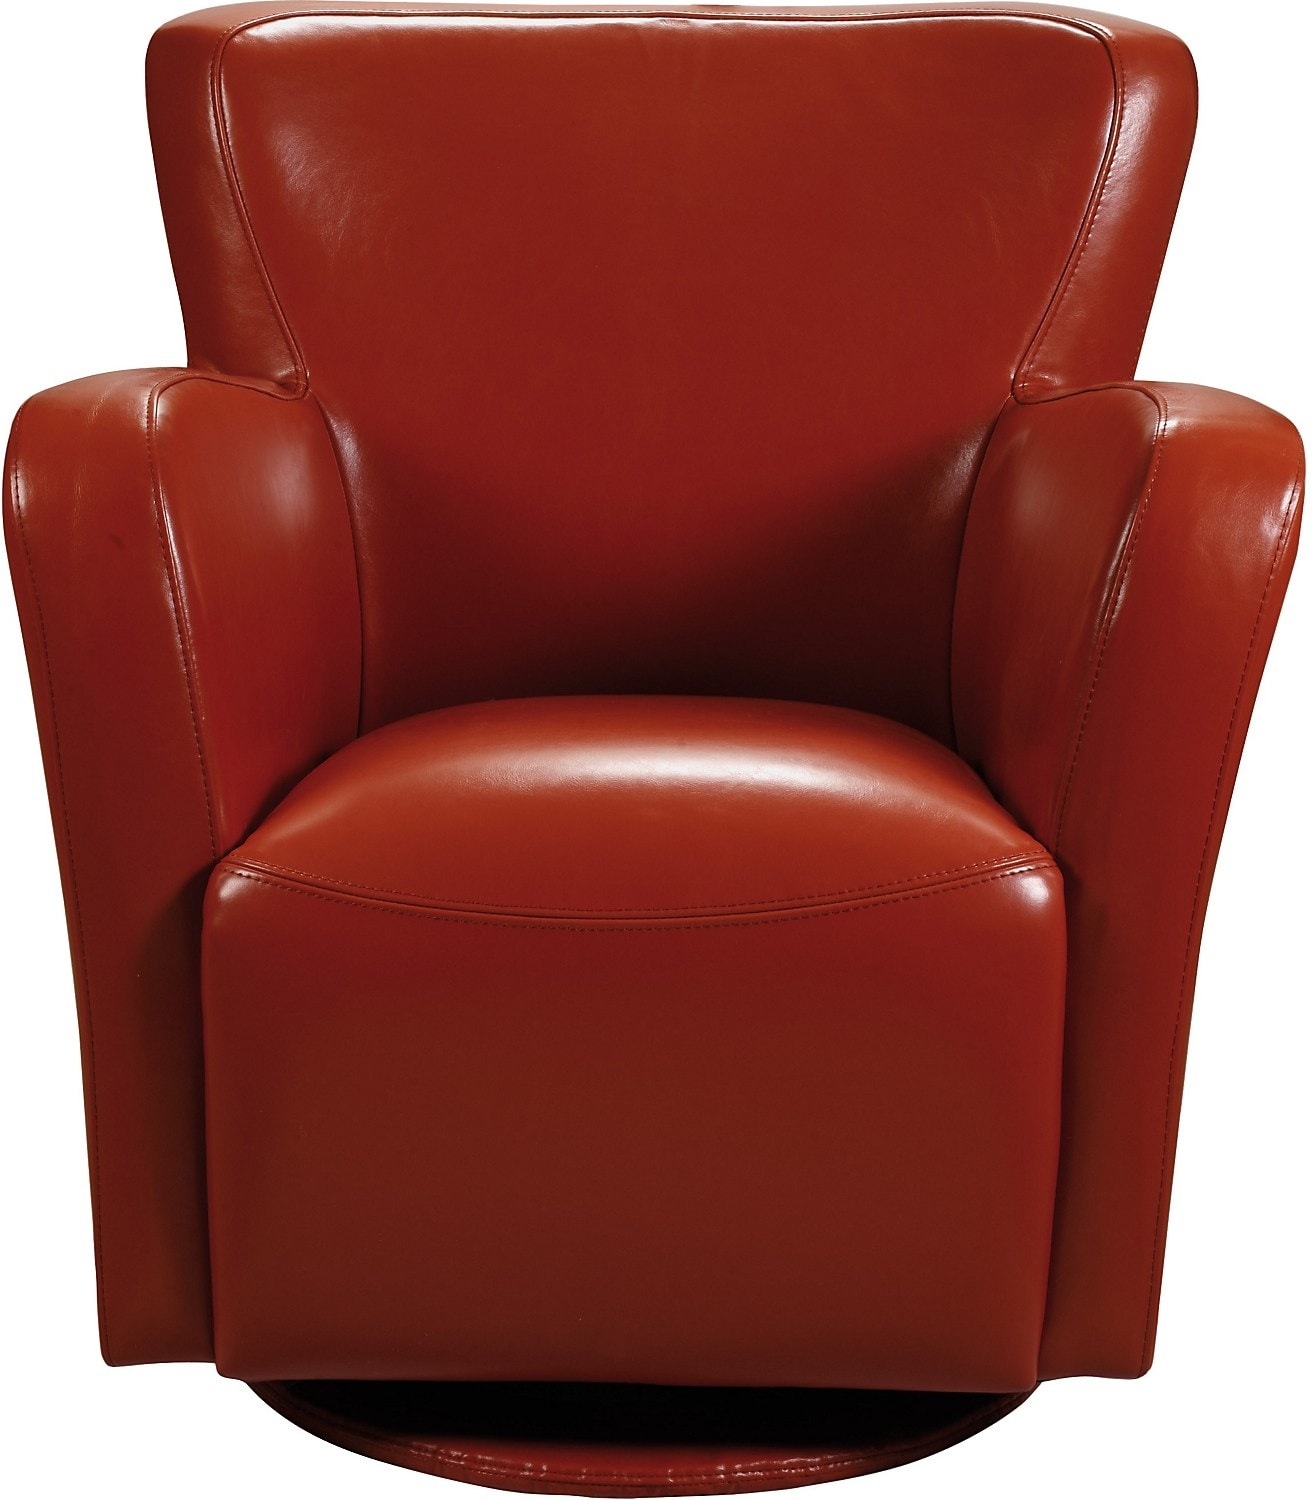 Living Room Furniture - Bonded Leather Swivel Chair - Spice